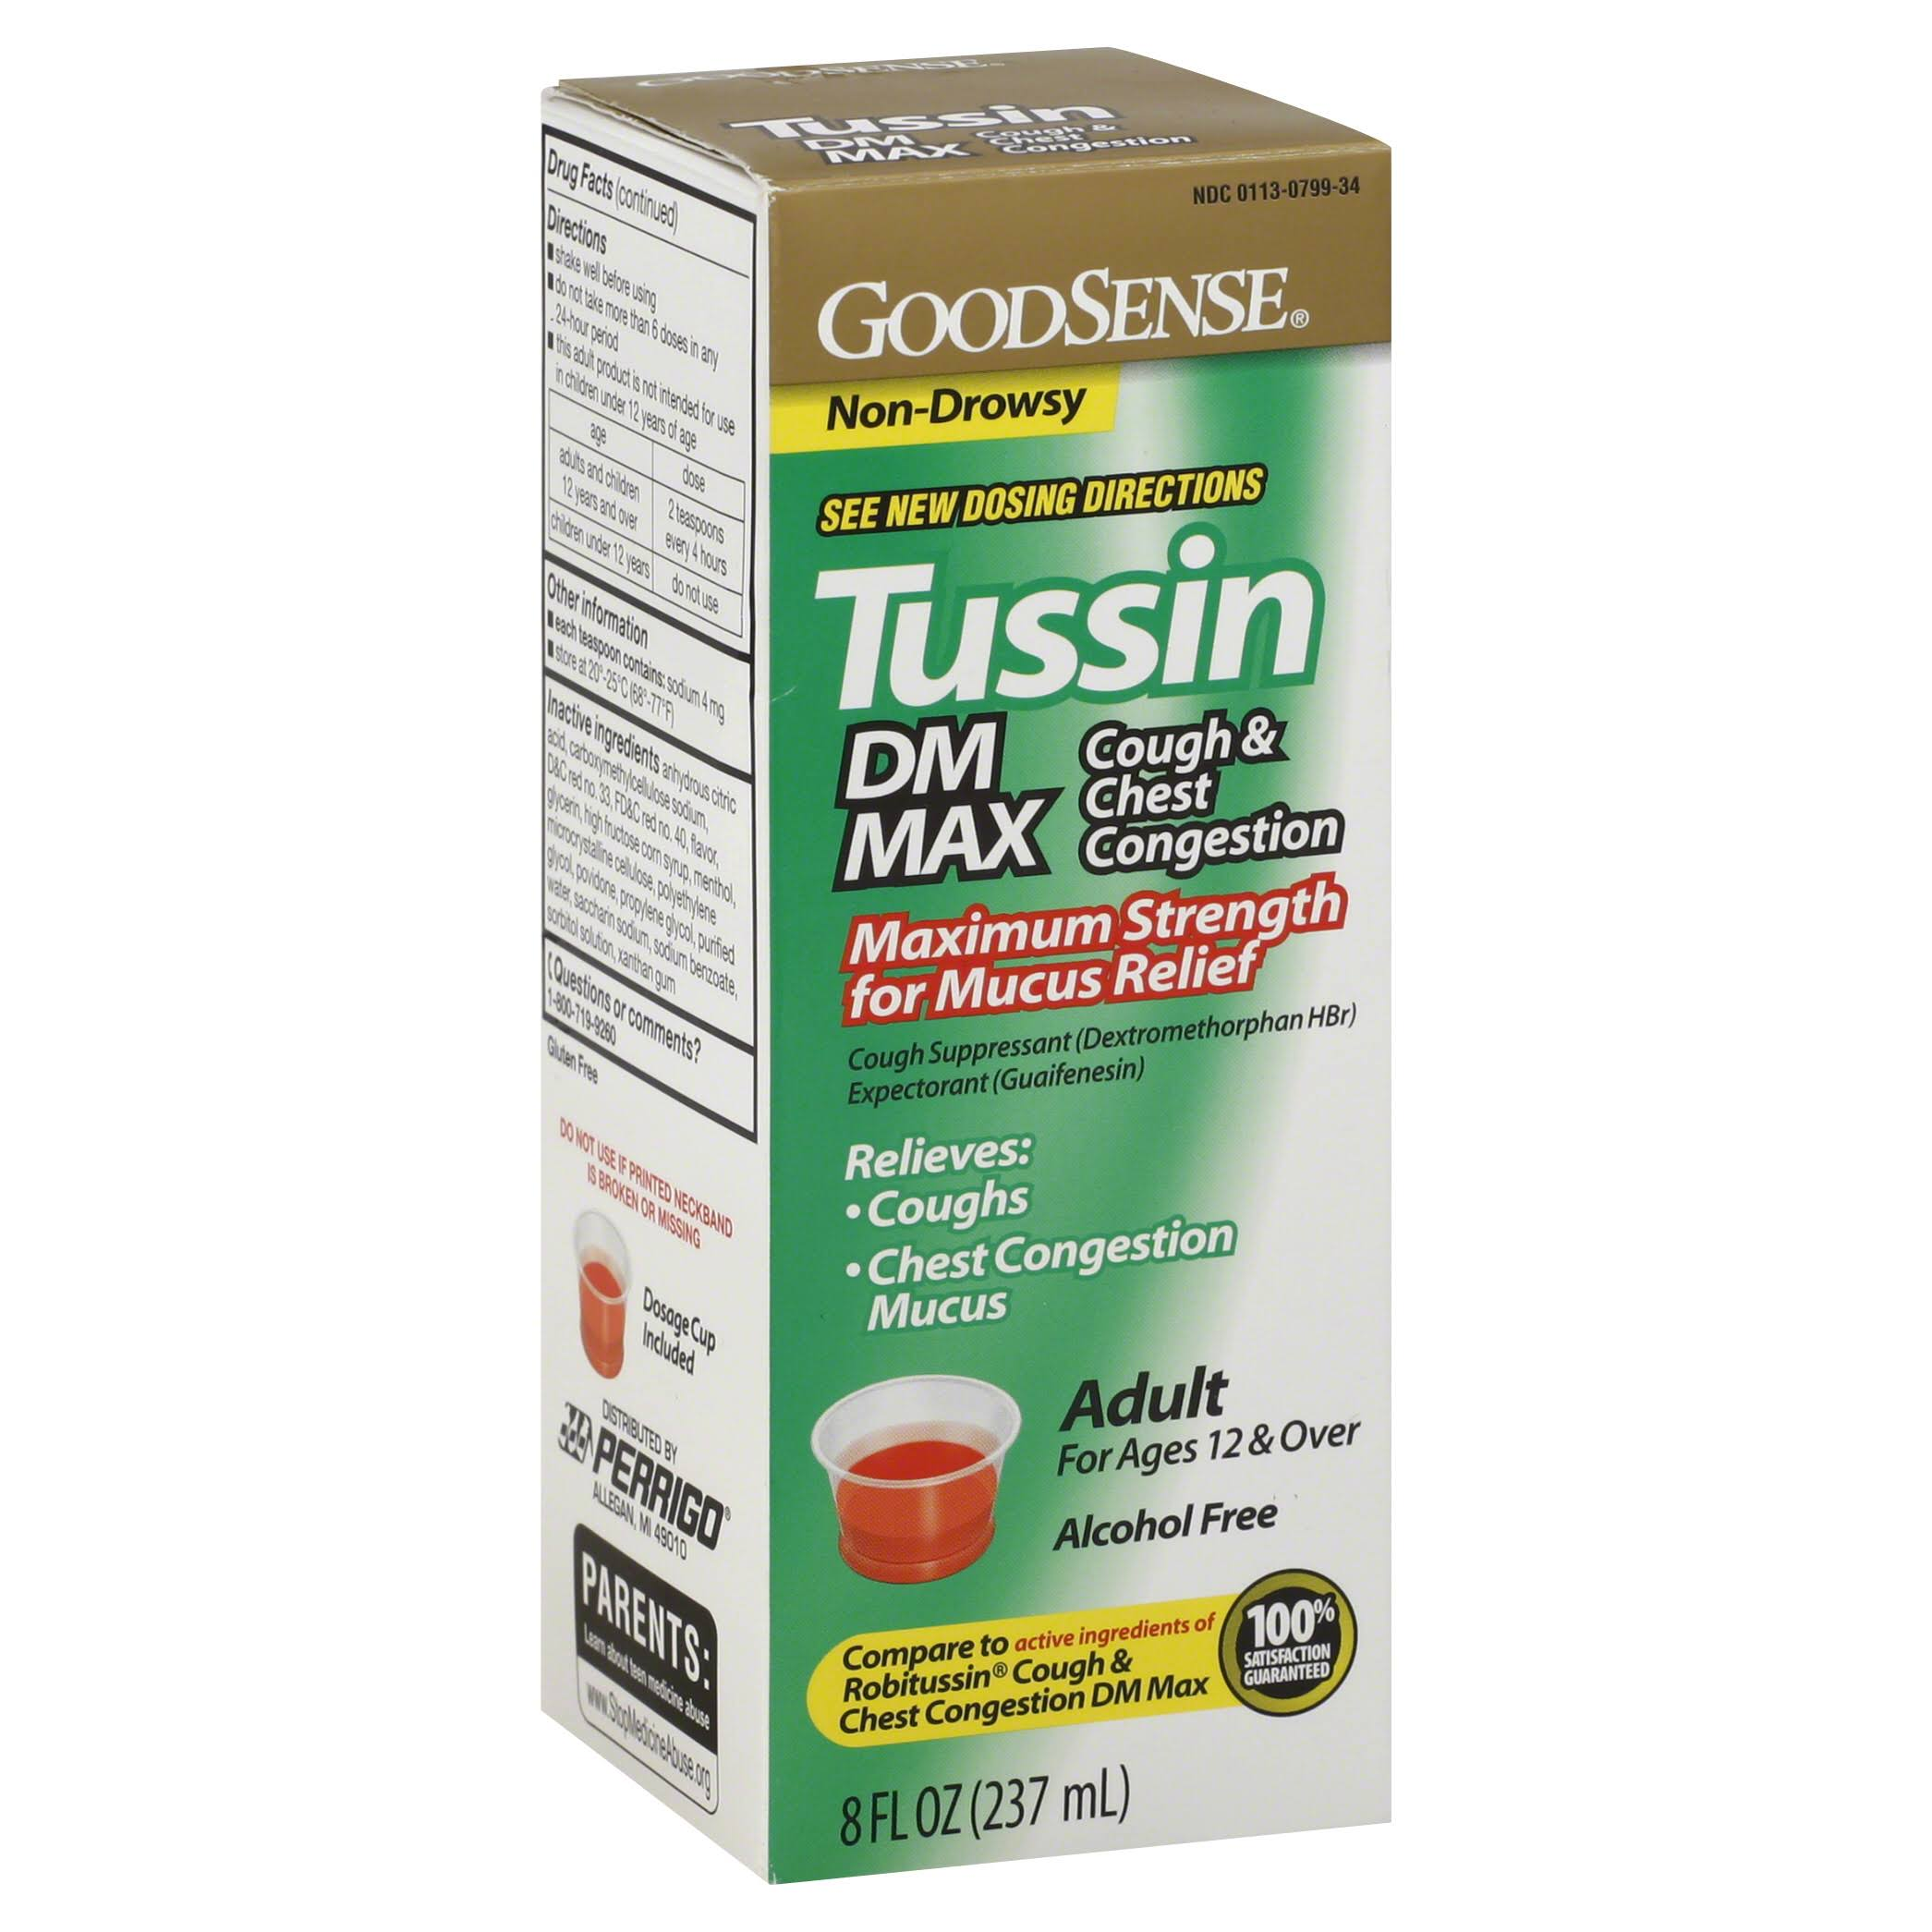 GoodSense Tussin, Adult, Cough & Chest Congestion, DM Max - 8 fl oz